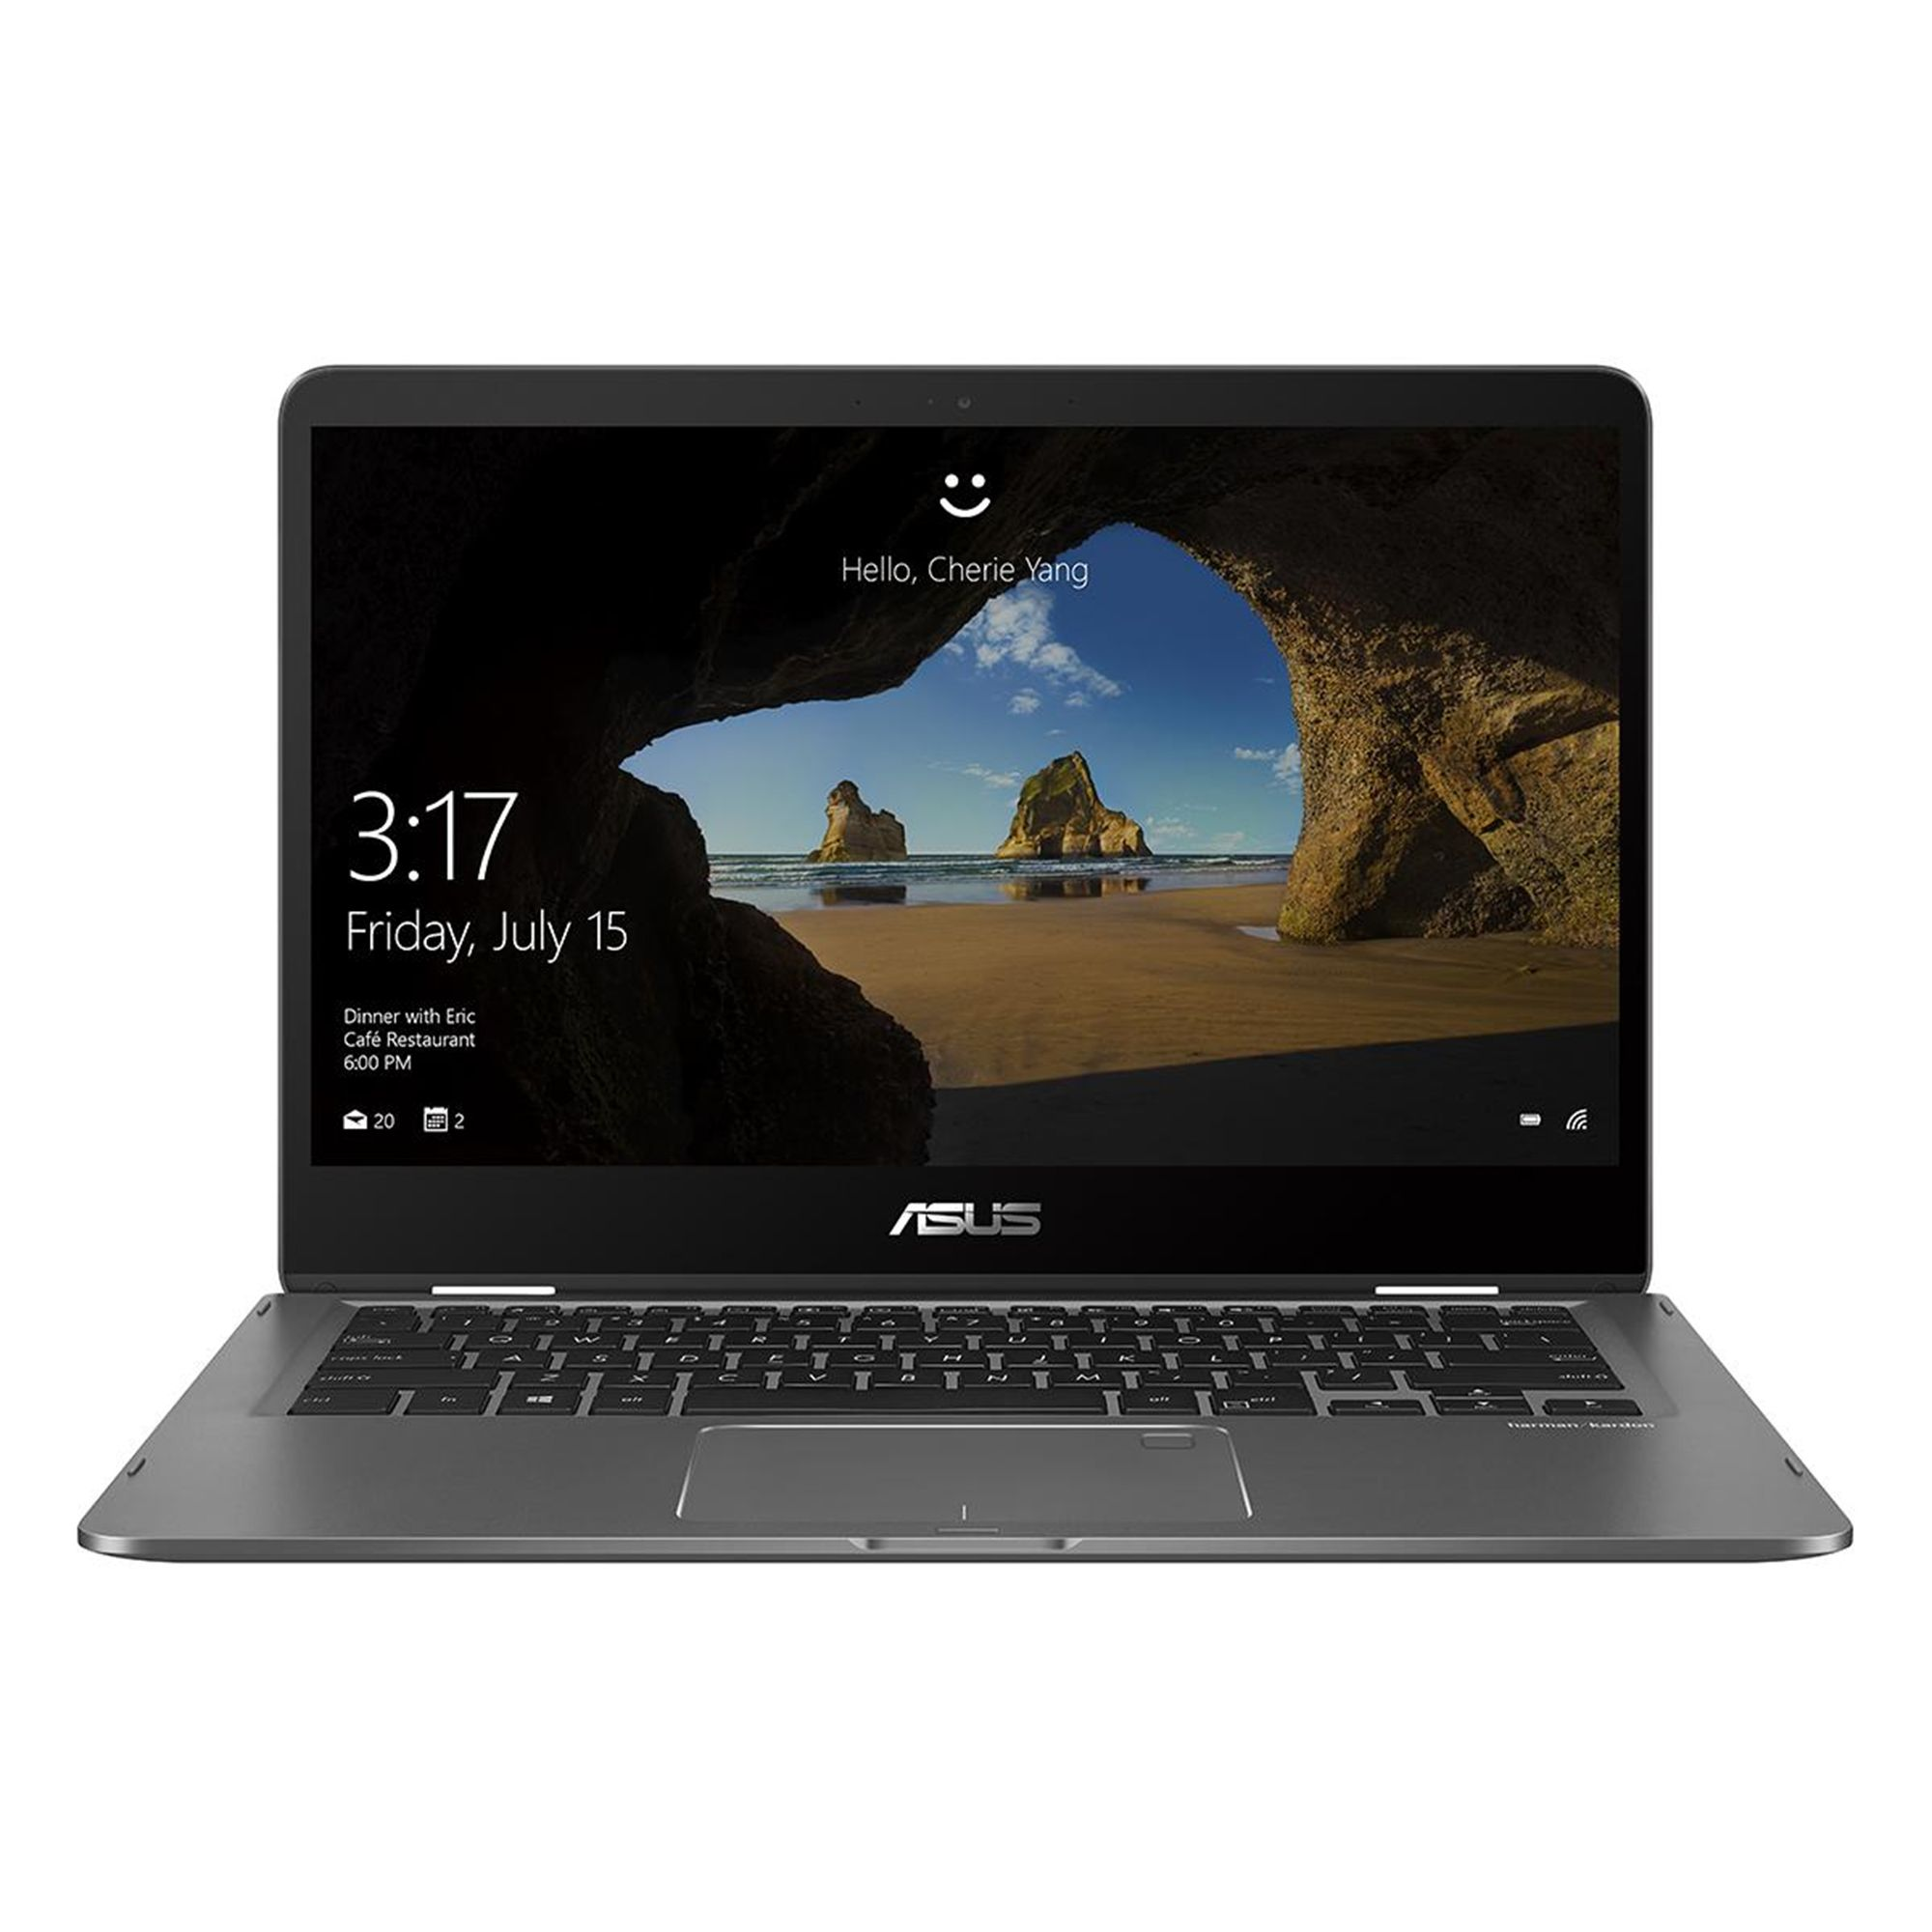 Ultrabook Asus ZenBook Flip UX461FA 14 Full HD Touch Intel Core i5-8265U RAM 8GB SSD 512GB Windows 10 Pro Gri